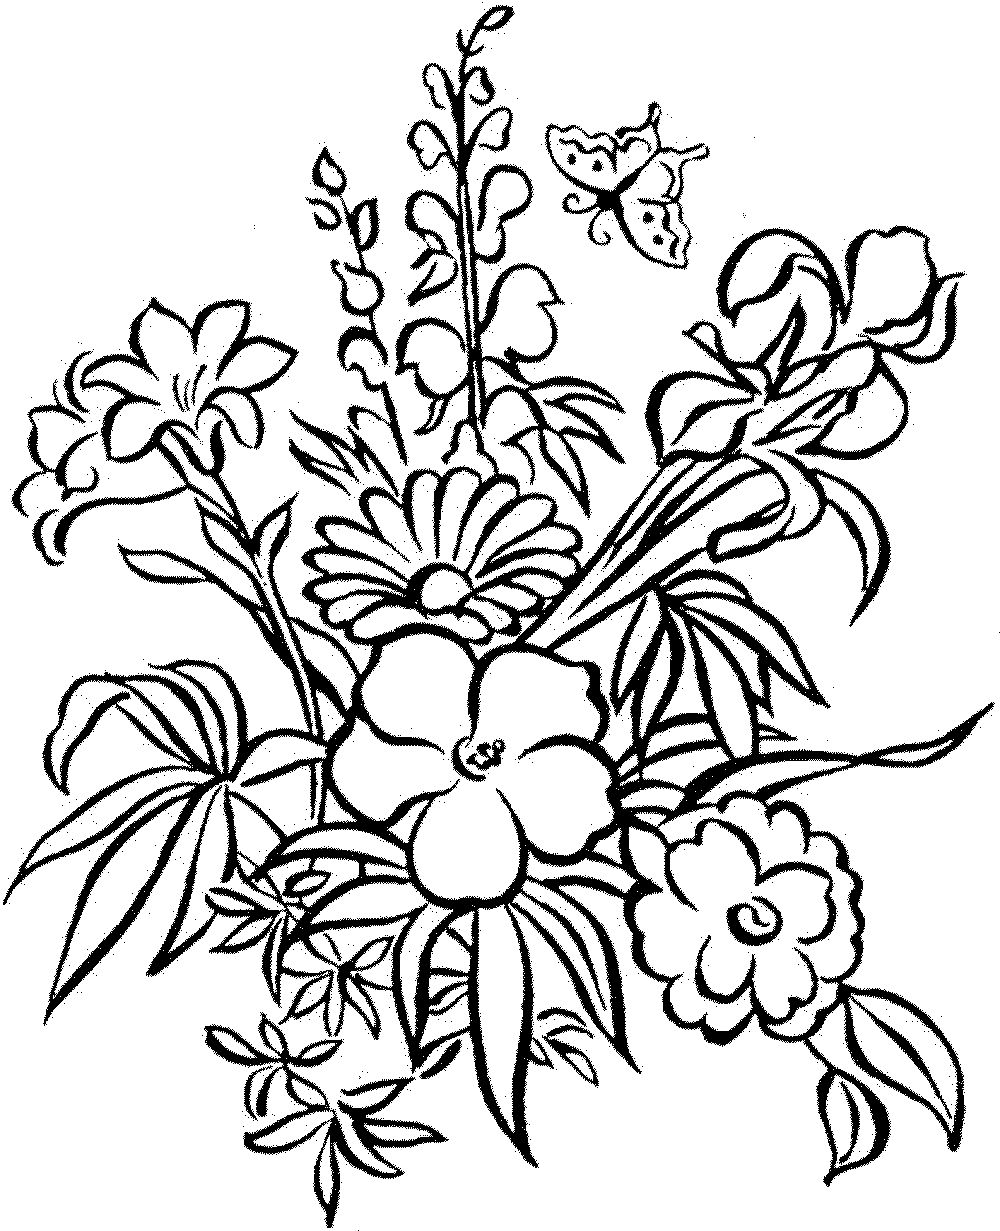 flower coloring pages adults flowers in a square flowers adult coloring pages flower coloring pages adults